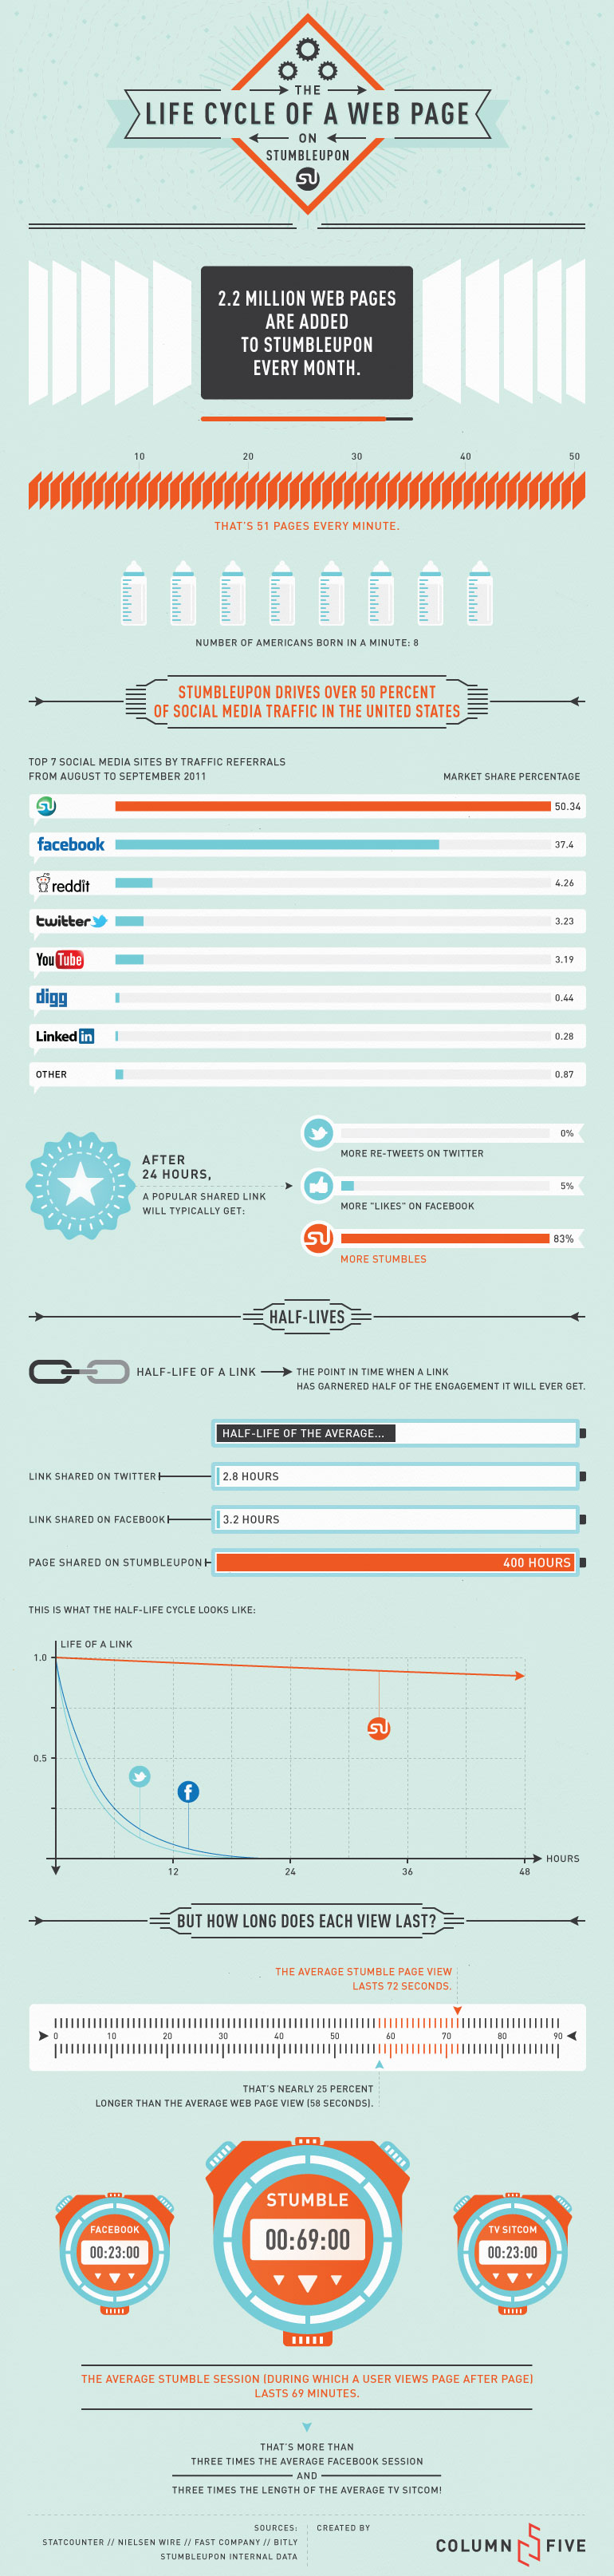 Infographic: The Lifecycle of a Web Page on StumbleUpon